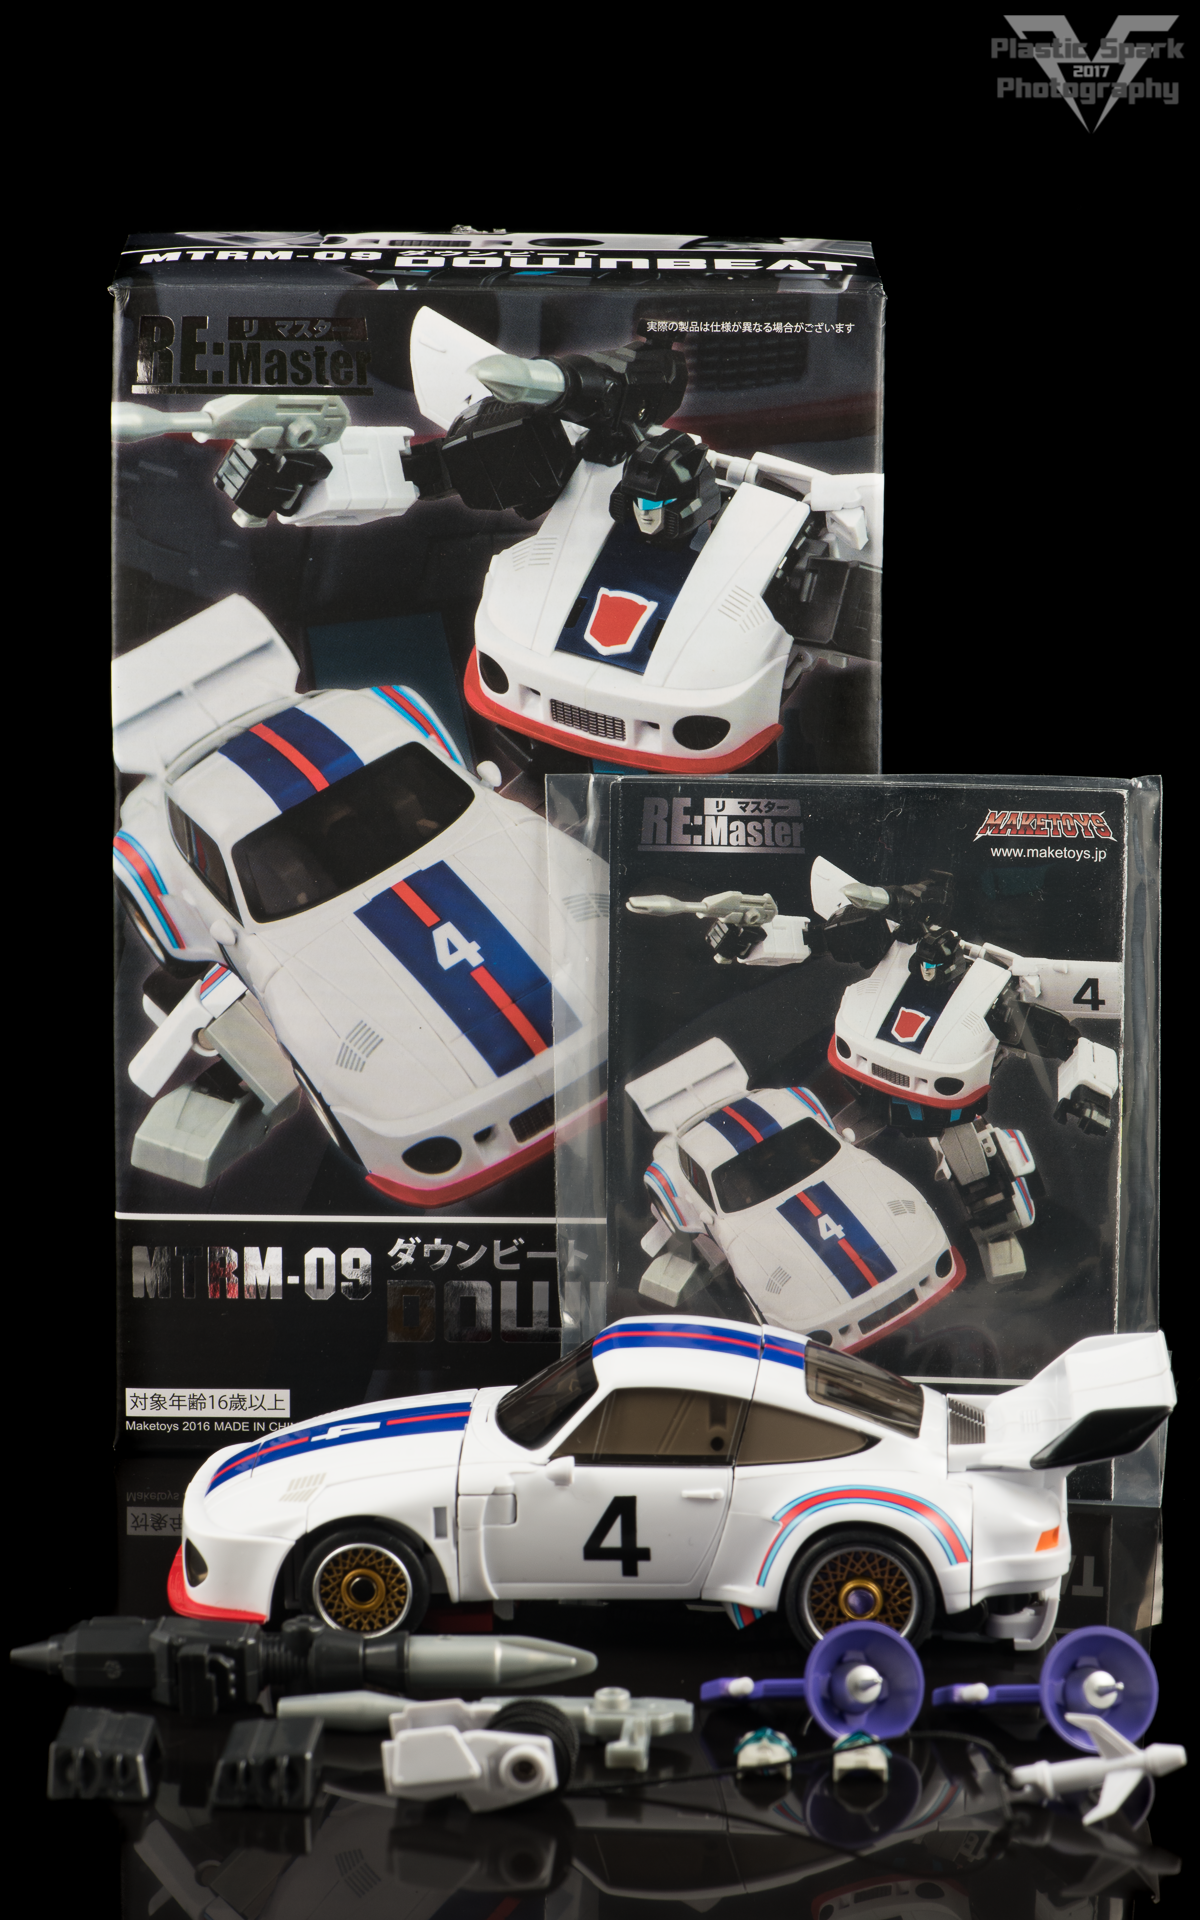 MakeToys-Re-Master-MTRM-09-Downbeat--(35-of-42).png